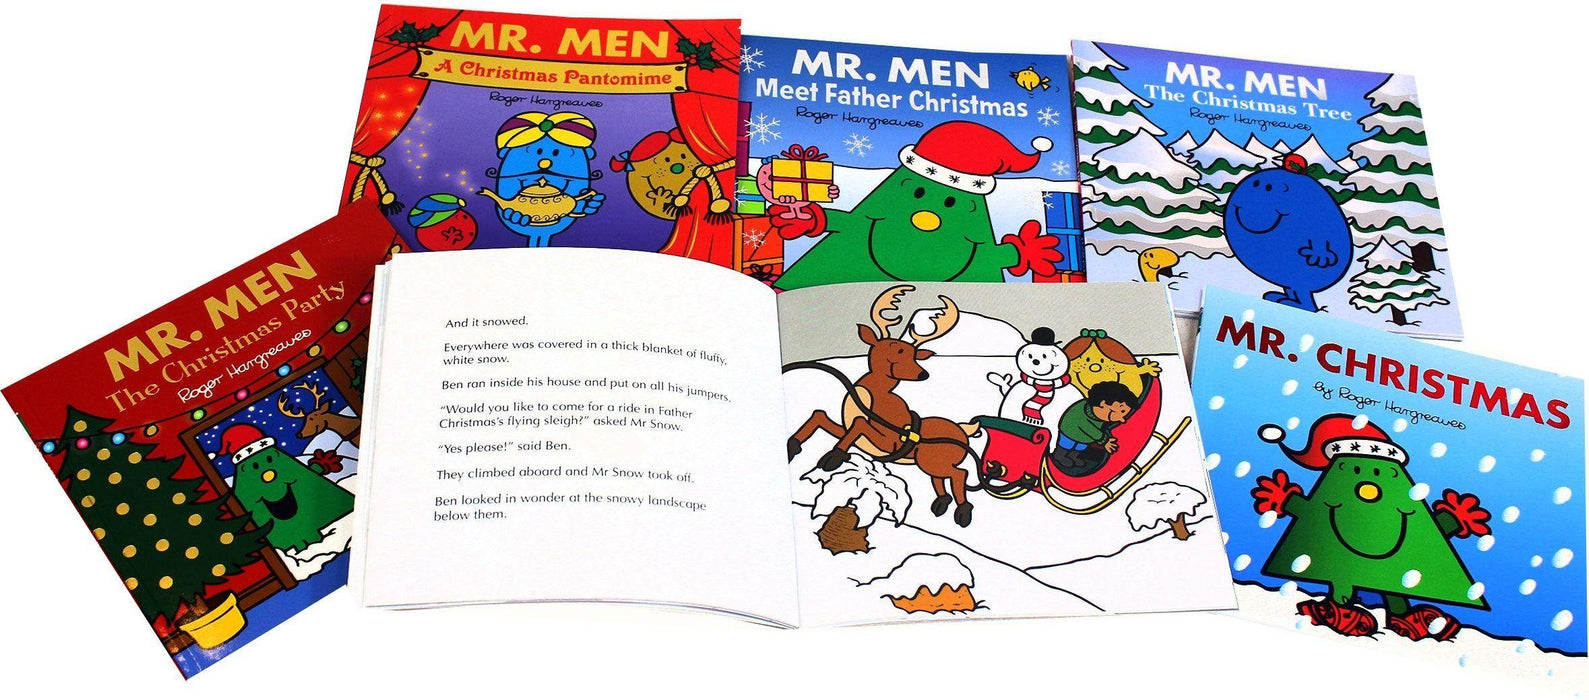 Mr Men 6 Christmas Books - Children's Literature - Paperback - Roger Hargreaves - Books2Door